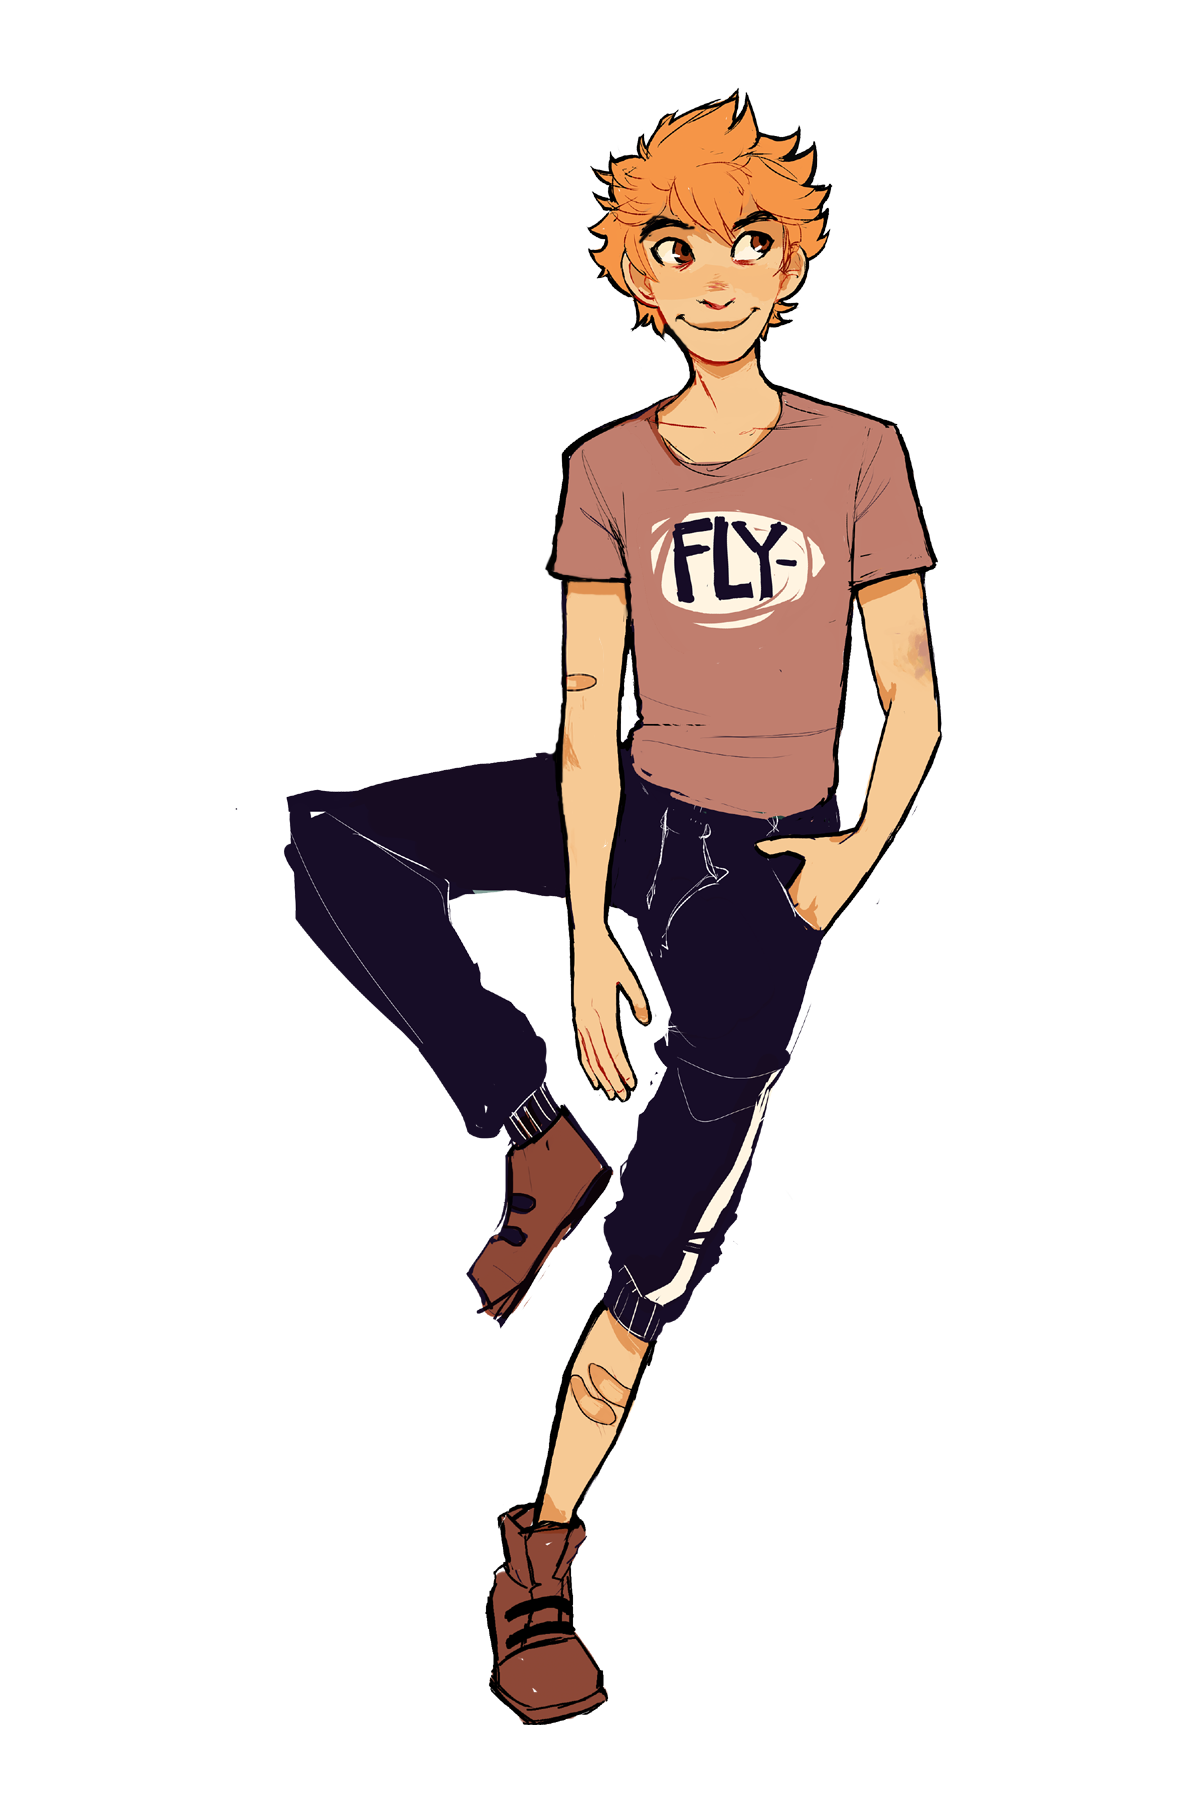 Clipart volleyball haikyuu. Pin by jasmine wang